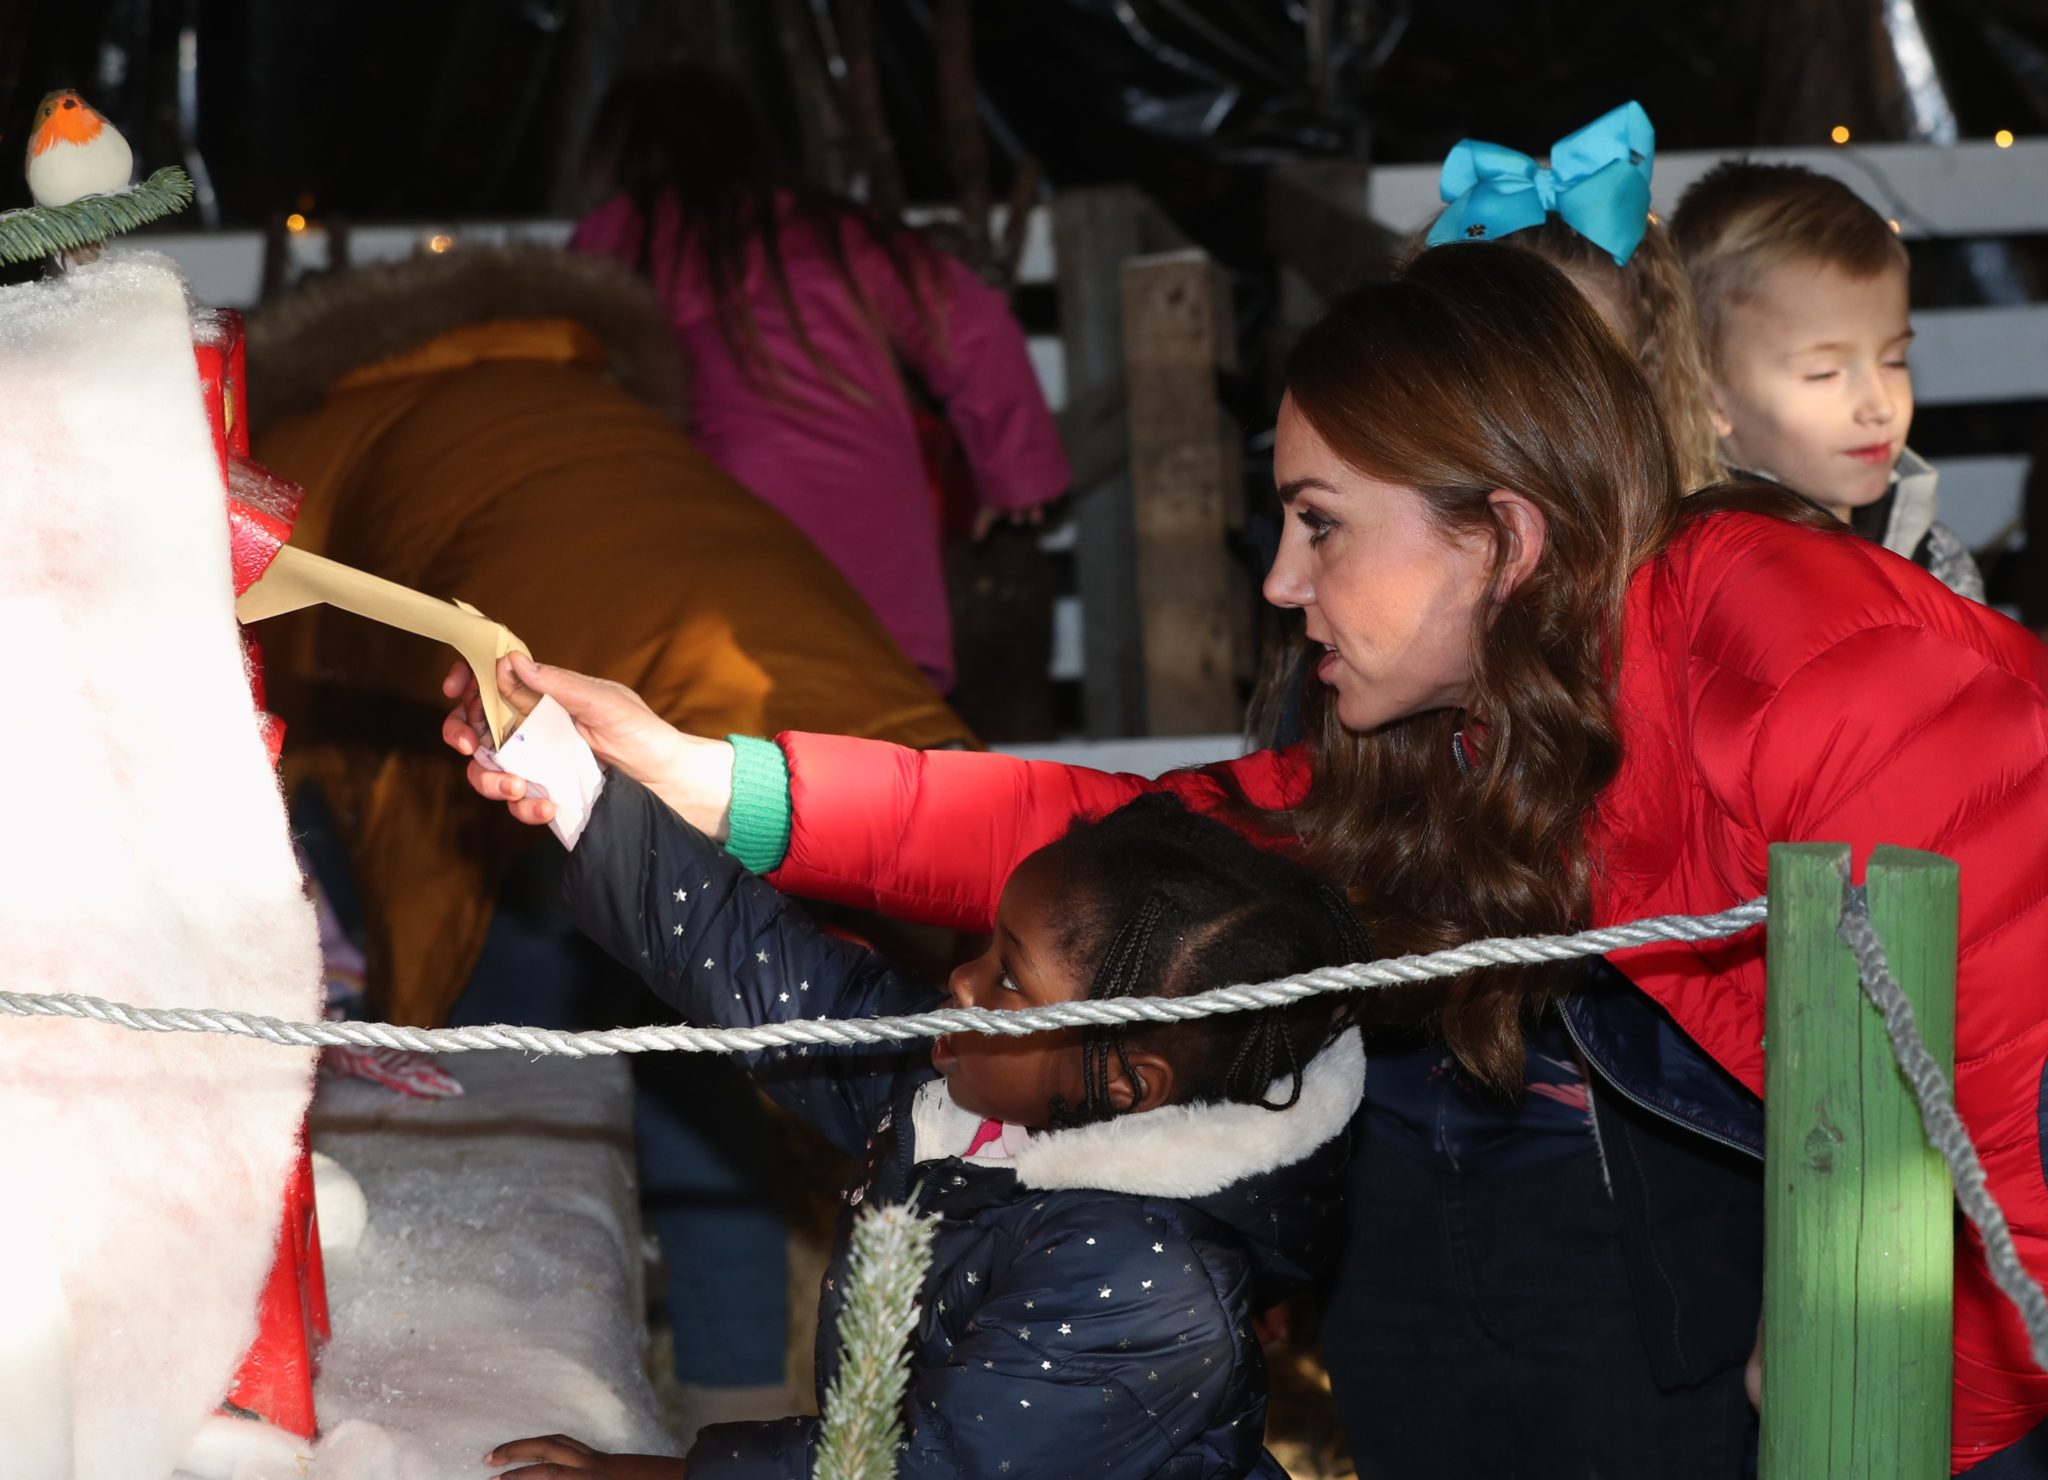 The Duchess of Cambridge has become Royal Patron of Family Action